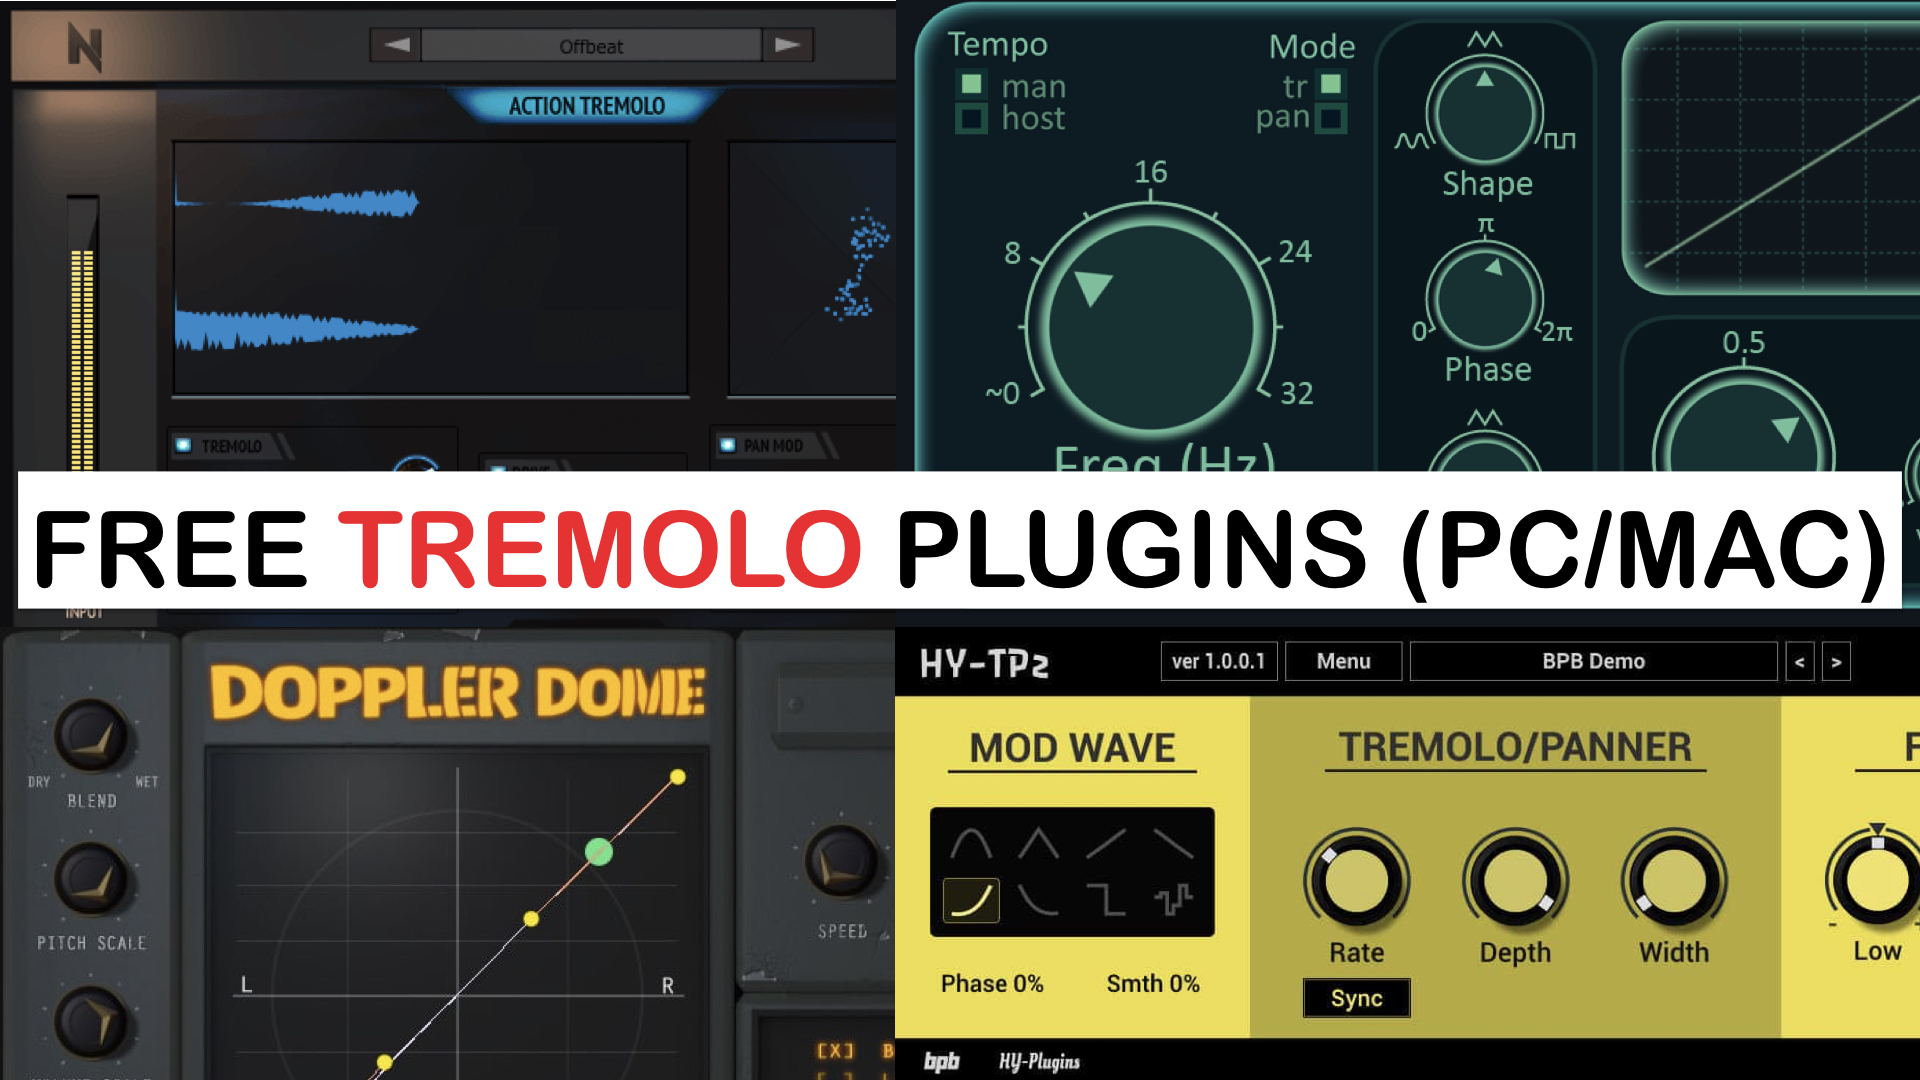 Best Free Tremolo Plugins For PC & Mac With 64-Bit